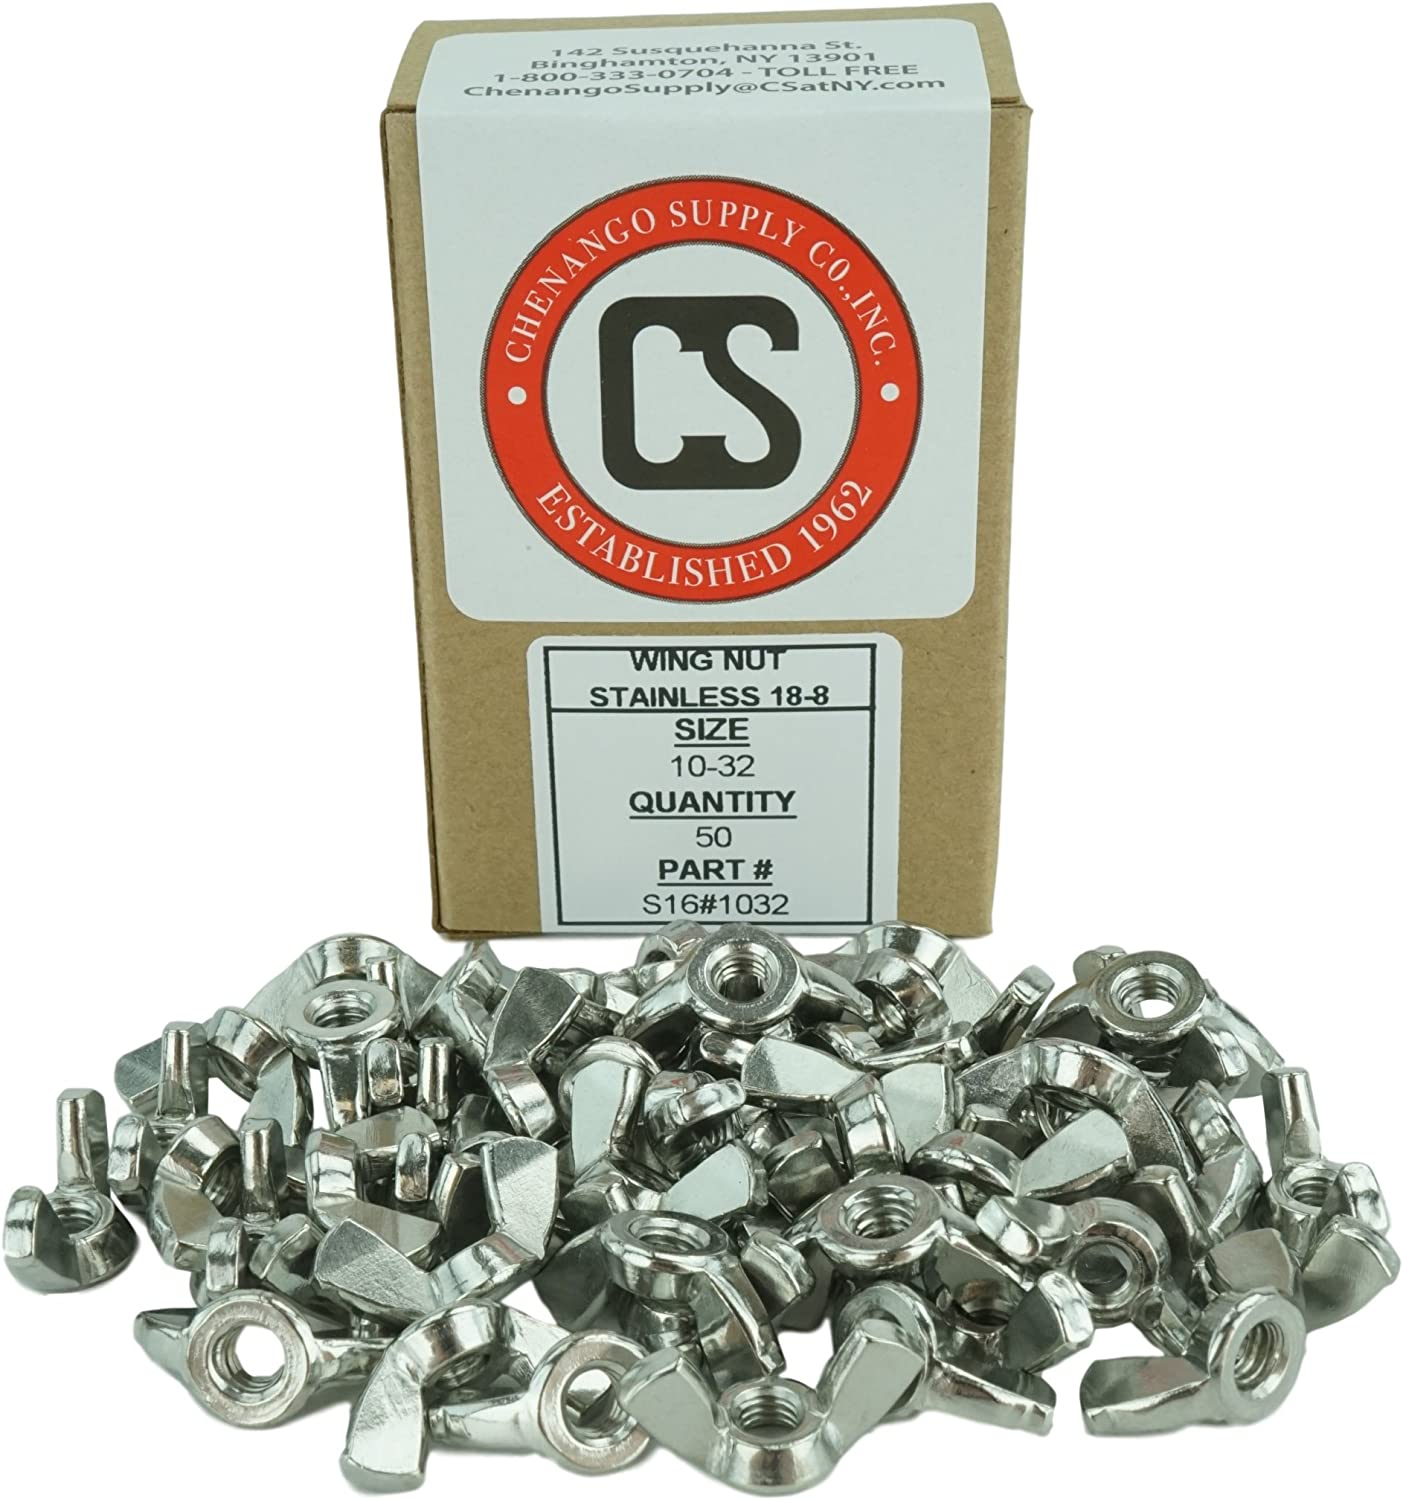 Powlankou 50 Pieces 1//4-20 Stainless Wing Nut 18-8 Wing Nut 304 Stainless Steel